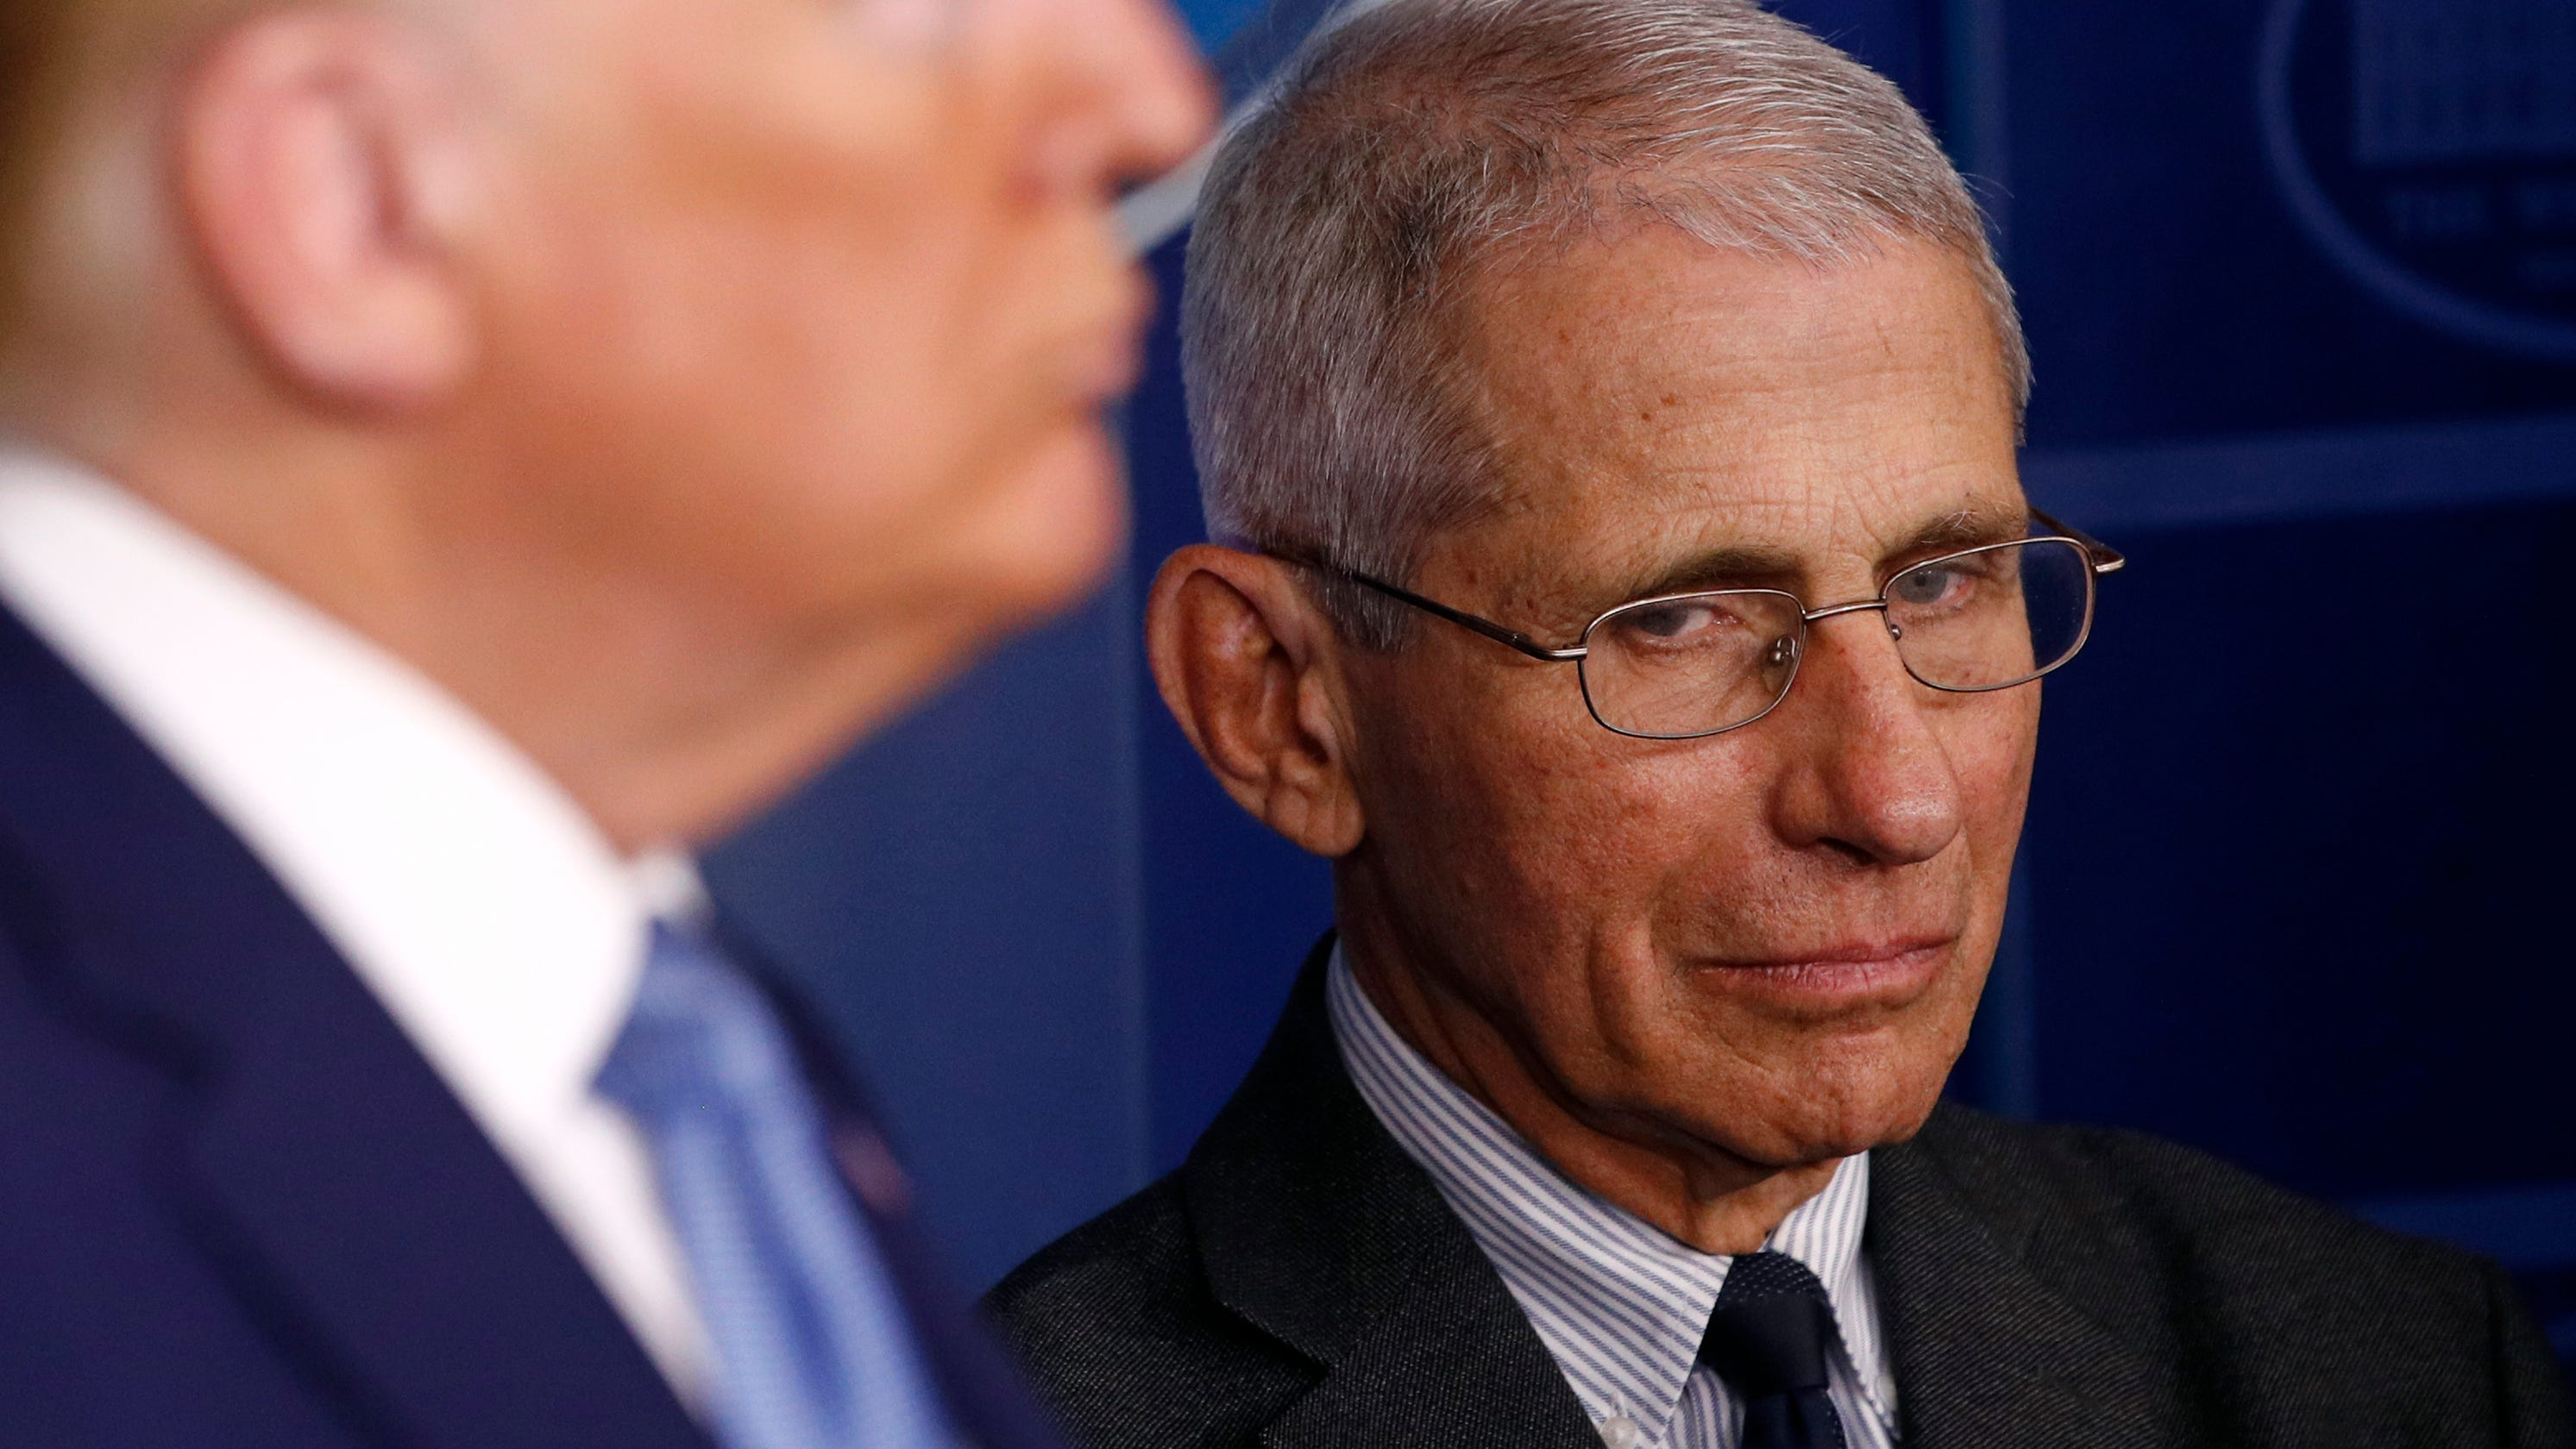 Dr. Fauci warns of 'imported' coronavirus cases once travel ban lifts thumbnail